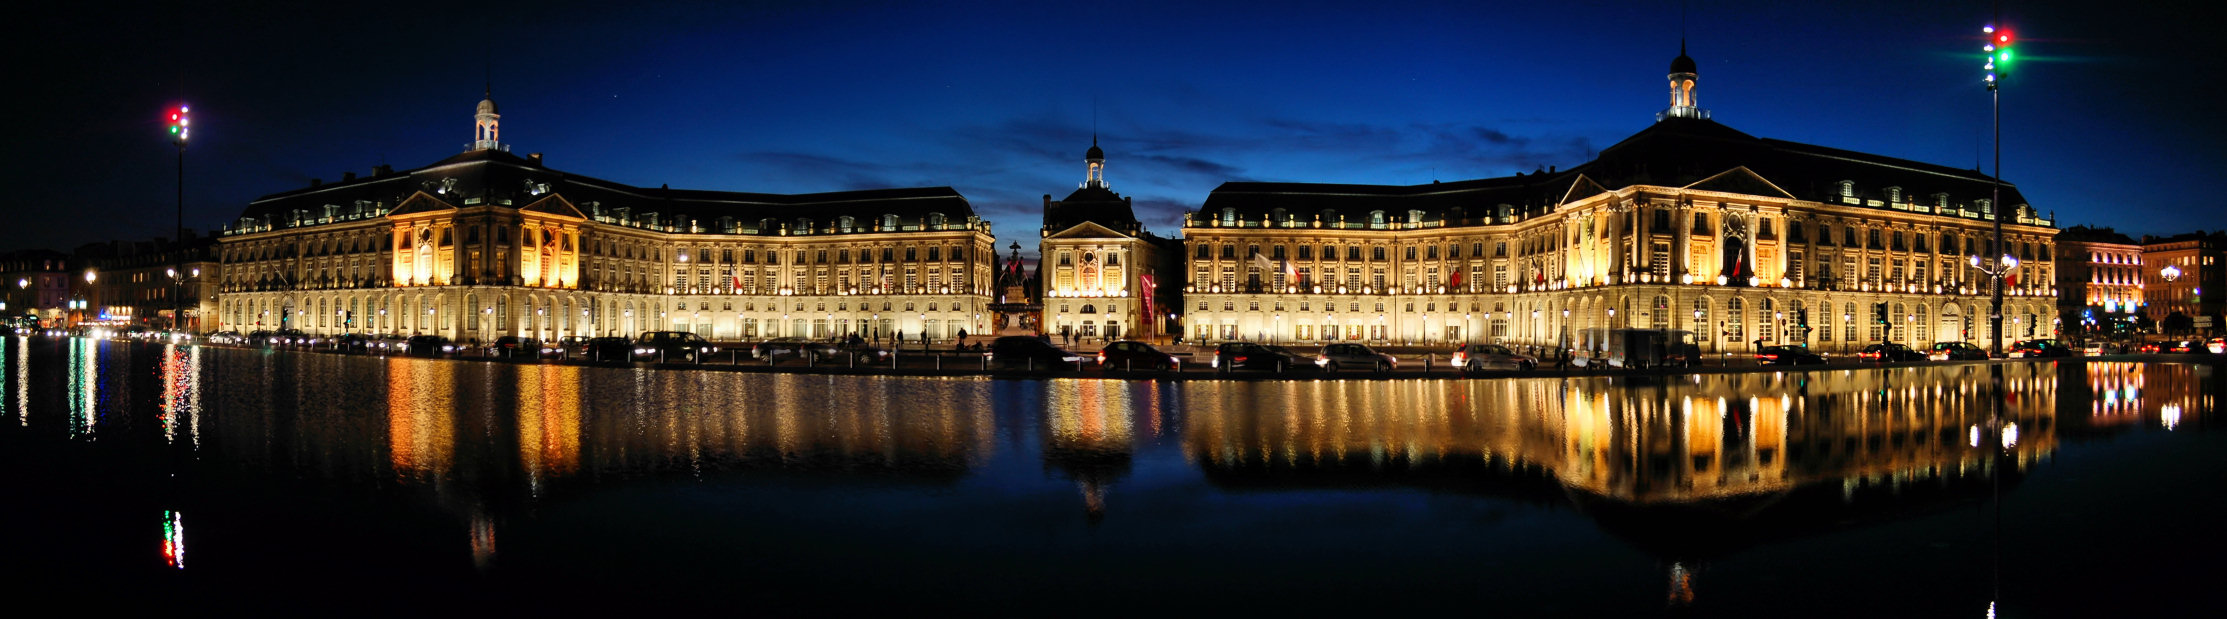 http://upload.wikimedia.org/wikipedia/commons/9/9f/Place_de_la_Bourse_Bordeaux_de_nuit.jpg